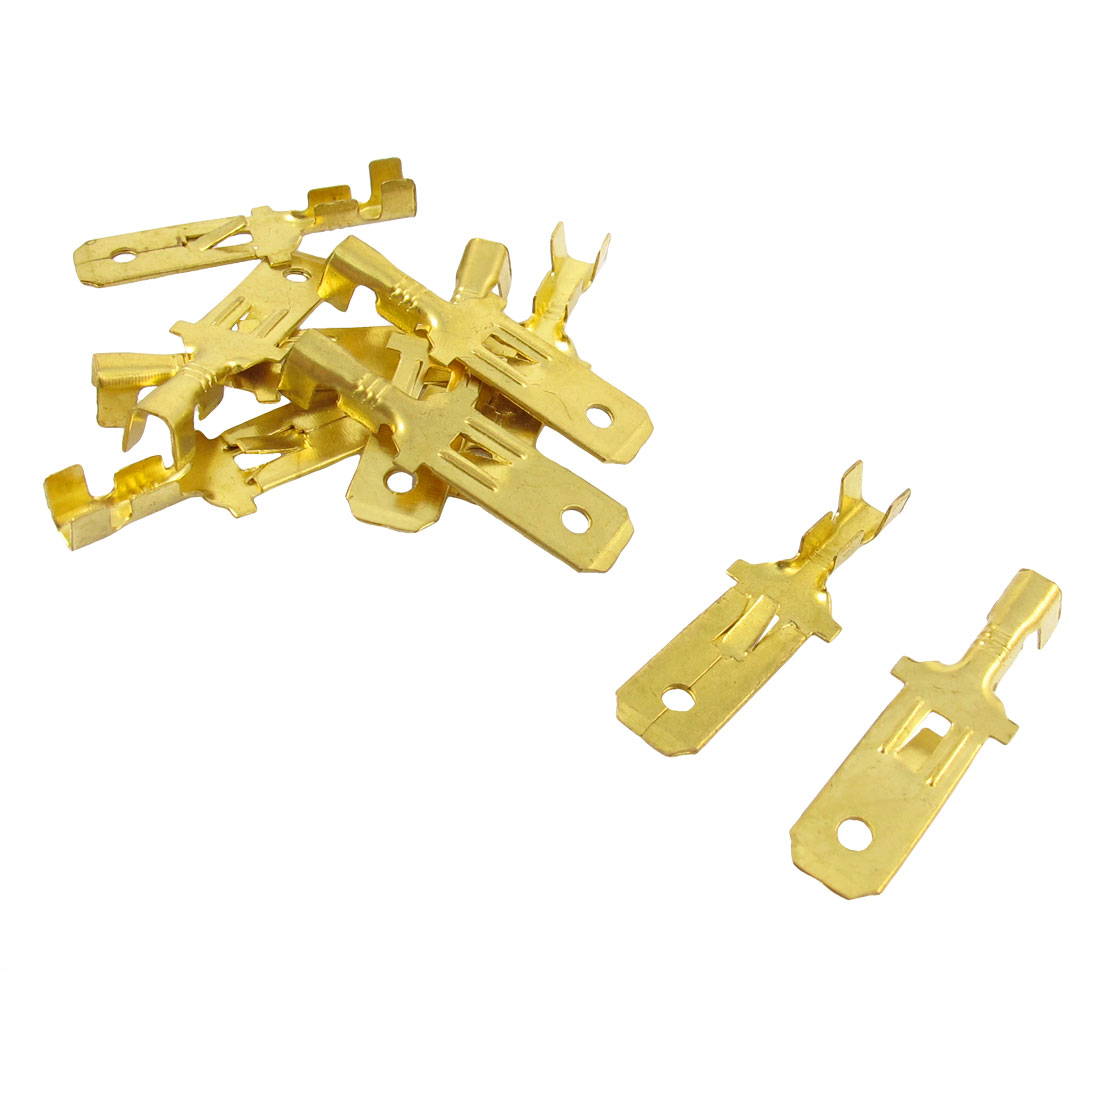 10 Pcs Gold Tone Male Spade Crimp Terminals 7.8mm Wiring Connectors